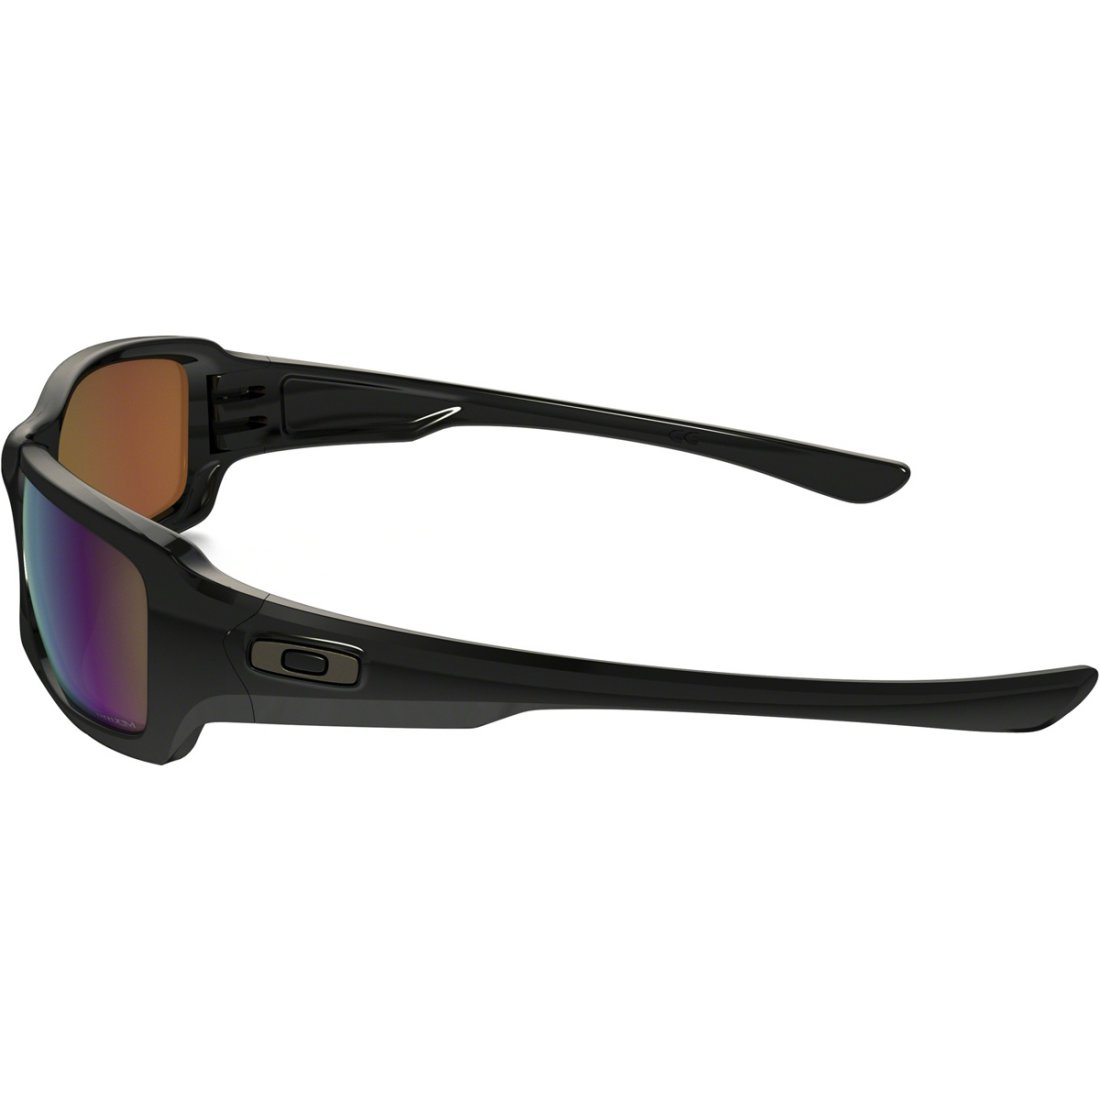 7b84eeda64 OAKLEY Fives Squared Polished Black   Prizm Shallow Water Polarized Sun  glasses